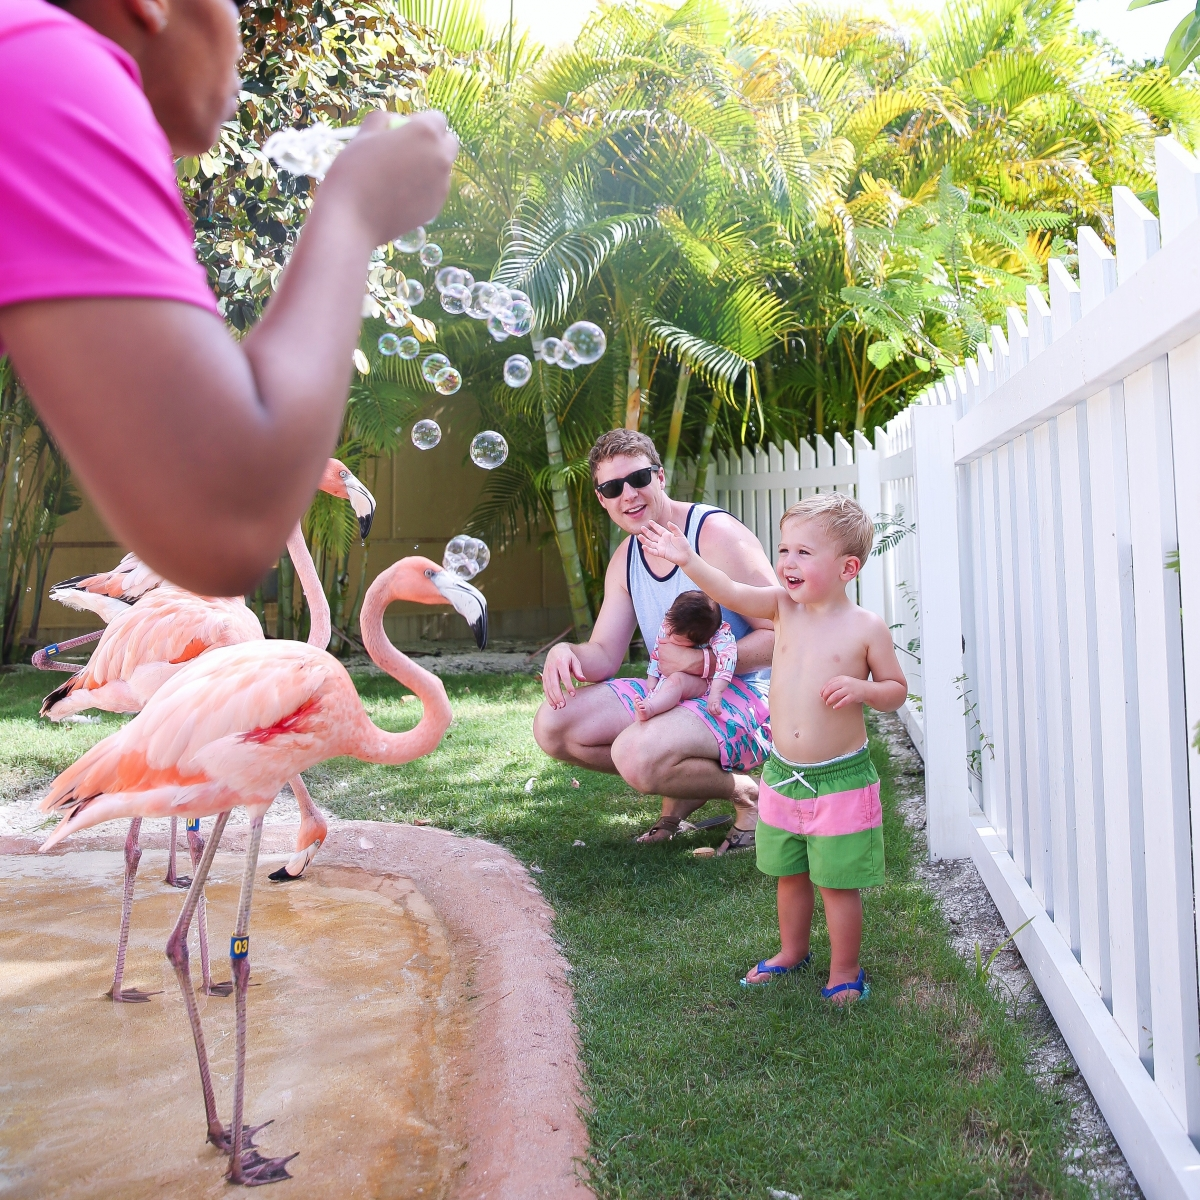 Bahamar review, emily ann gemma, the sweetest thing blog, bahamas travel blogger